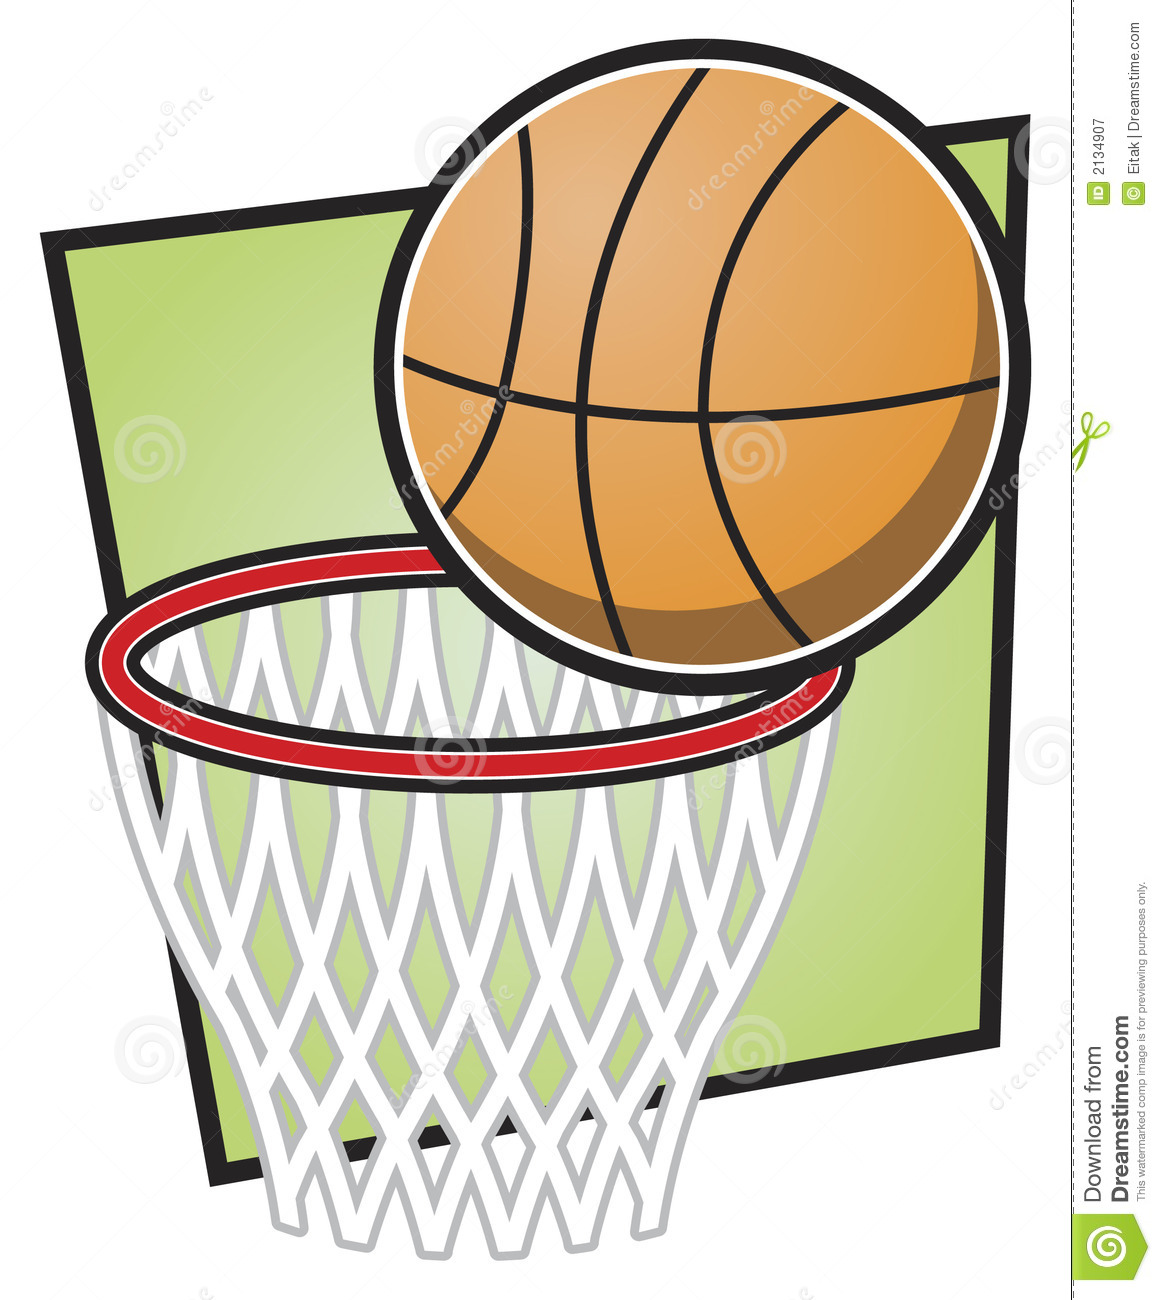 basketball net clipart free - photo #19